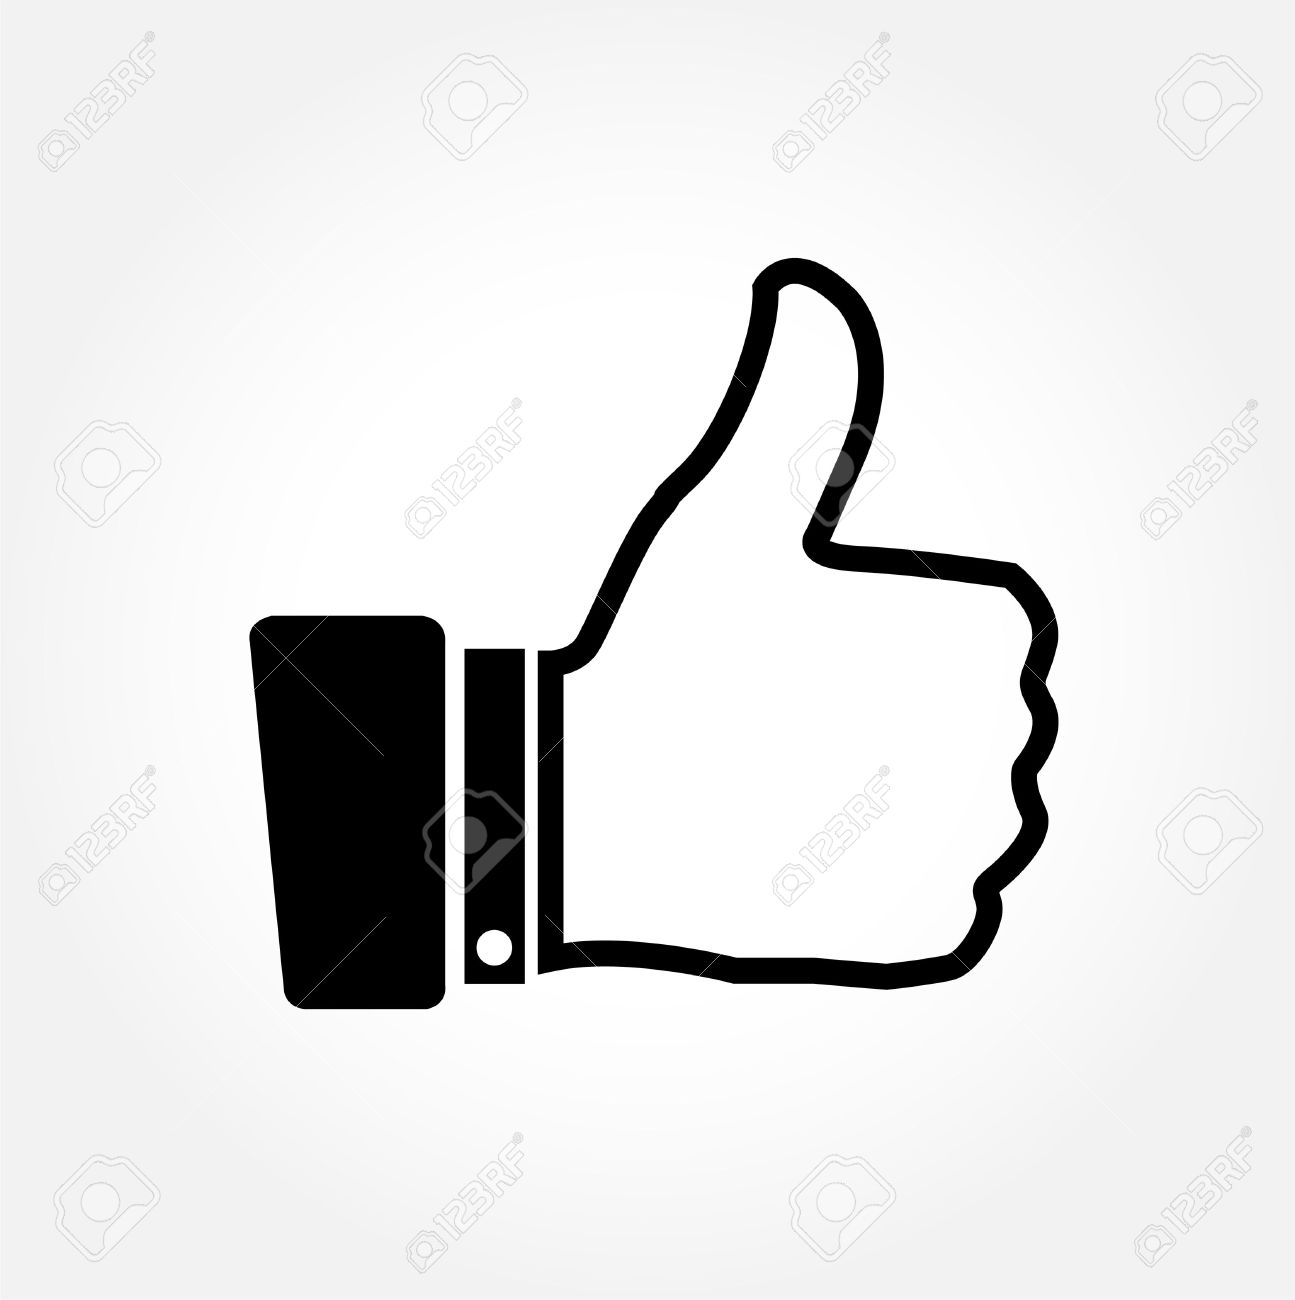 thumbs up vector icon on white background royalty free cliparts rh 123rf com thumbs up vector icon thumbs up vector free